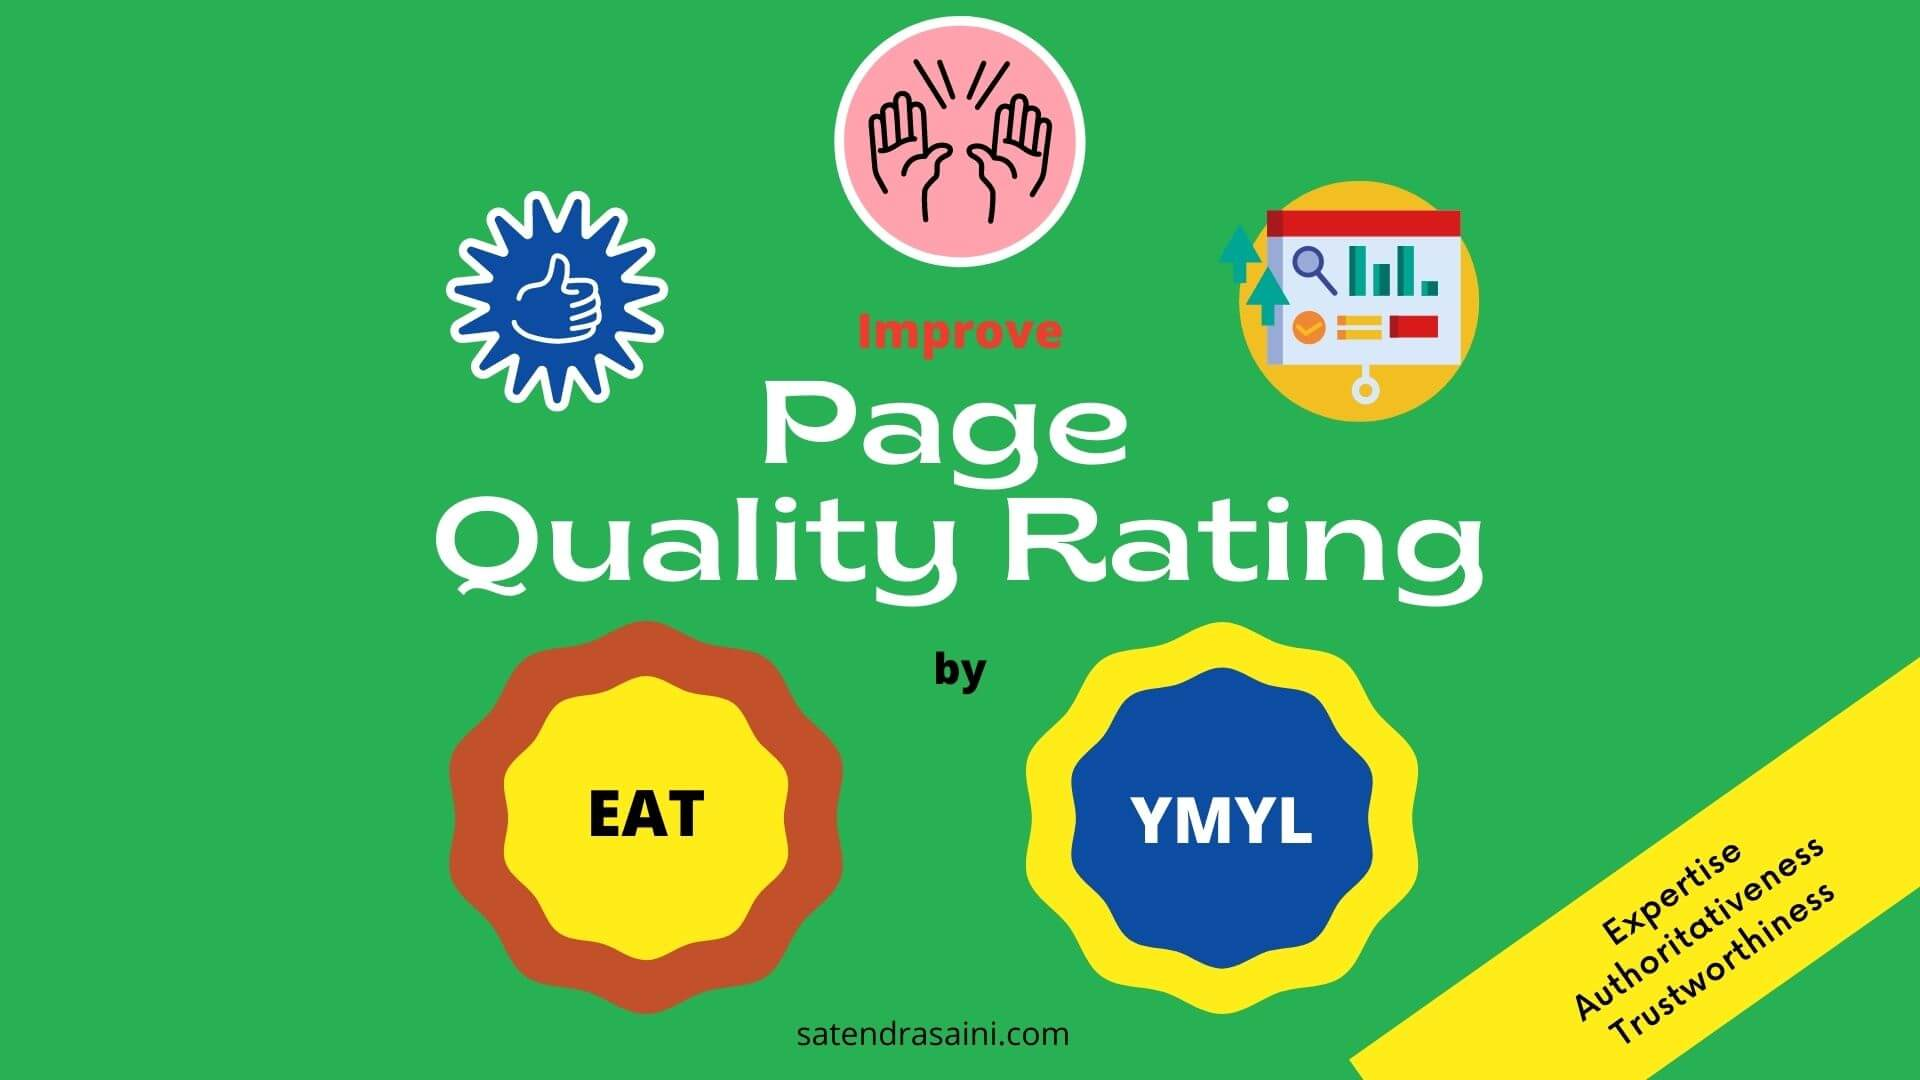 Page Quality Rating: How E.A.T. & YMYL Affect Ranking